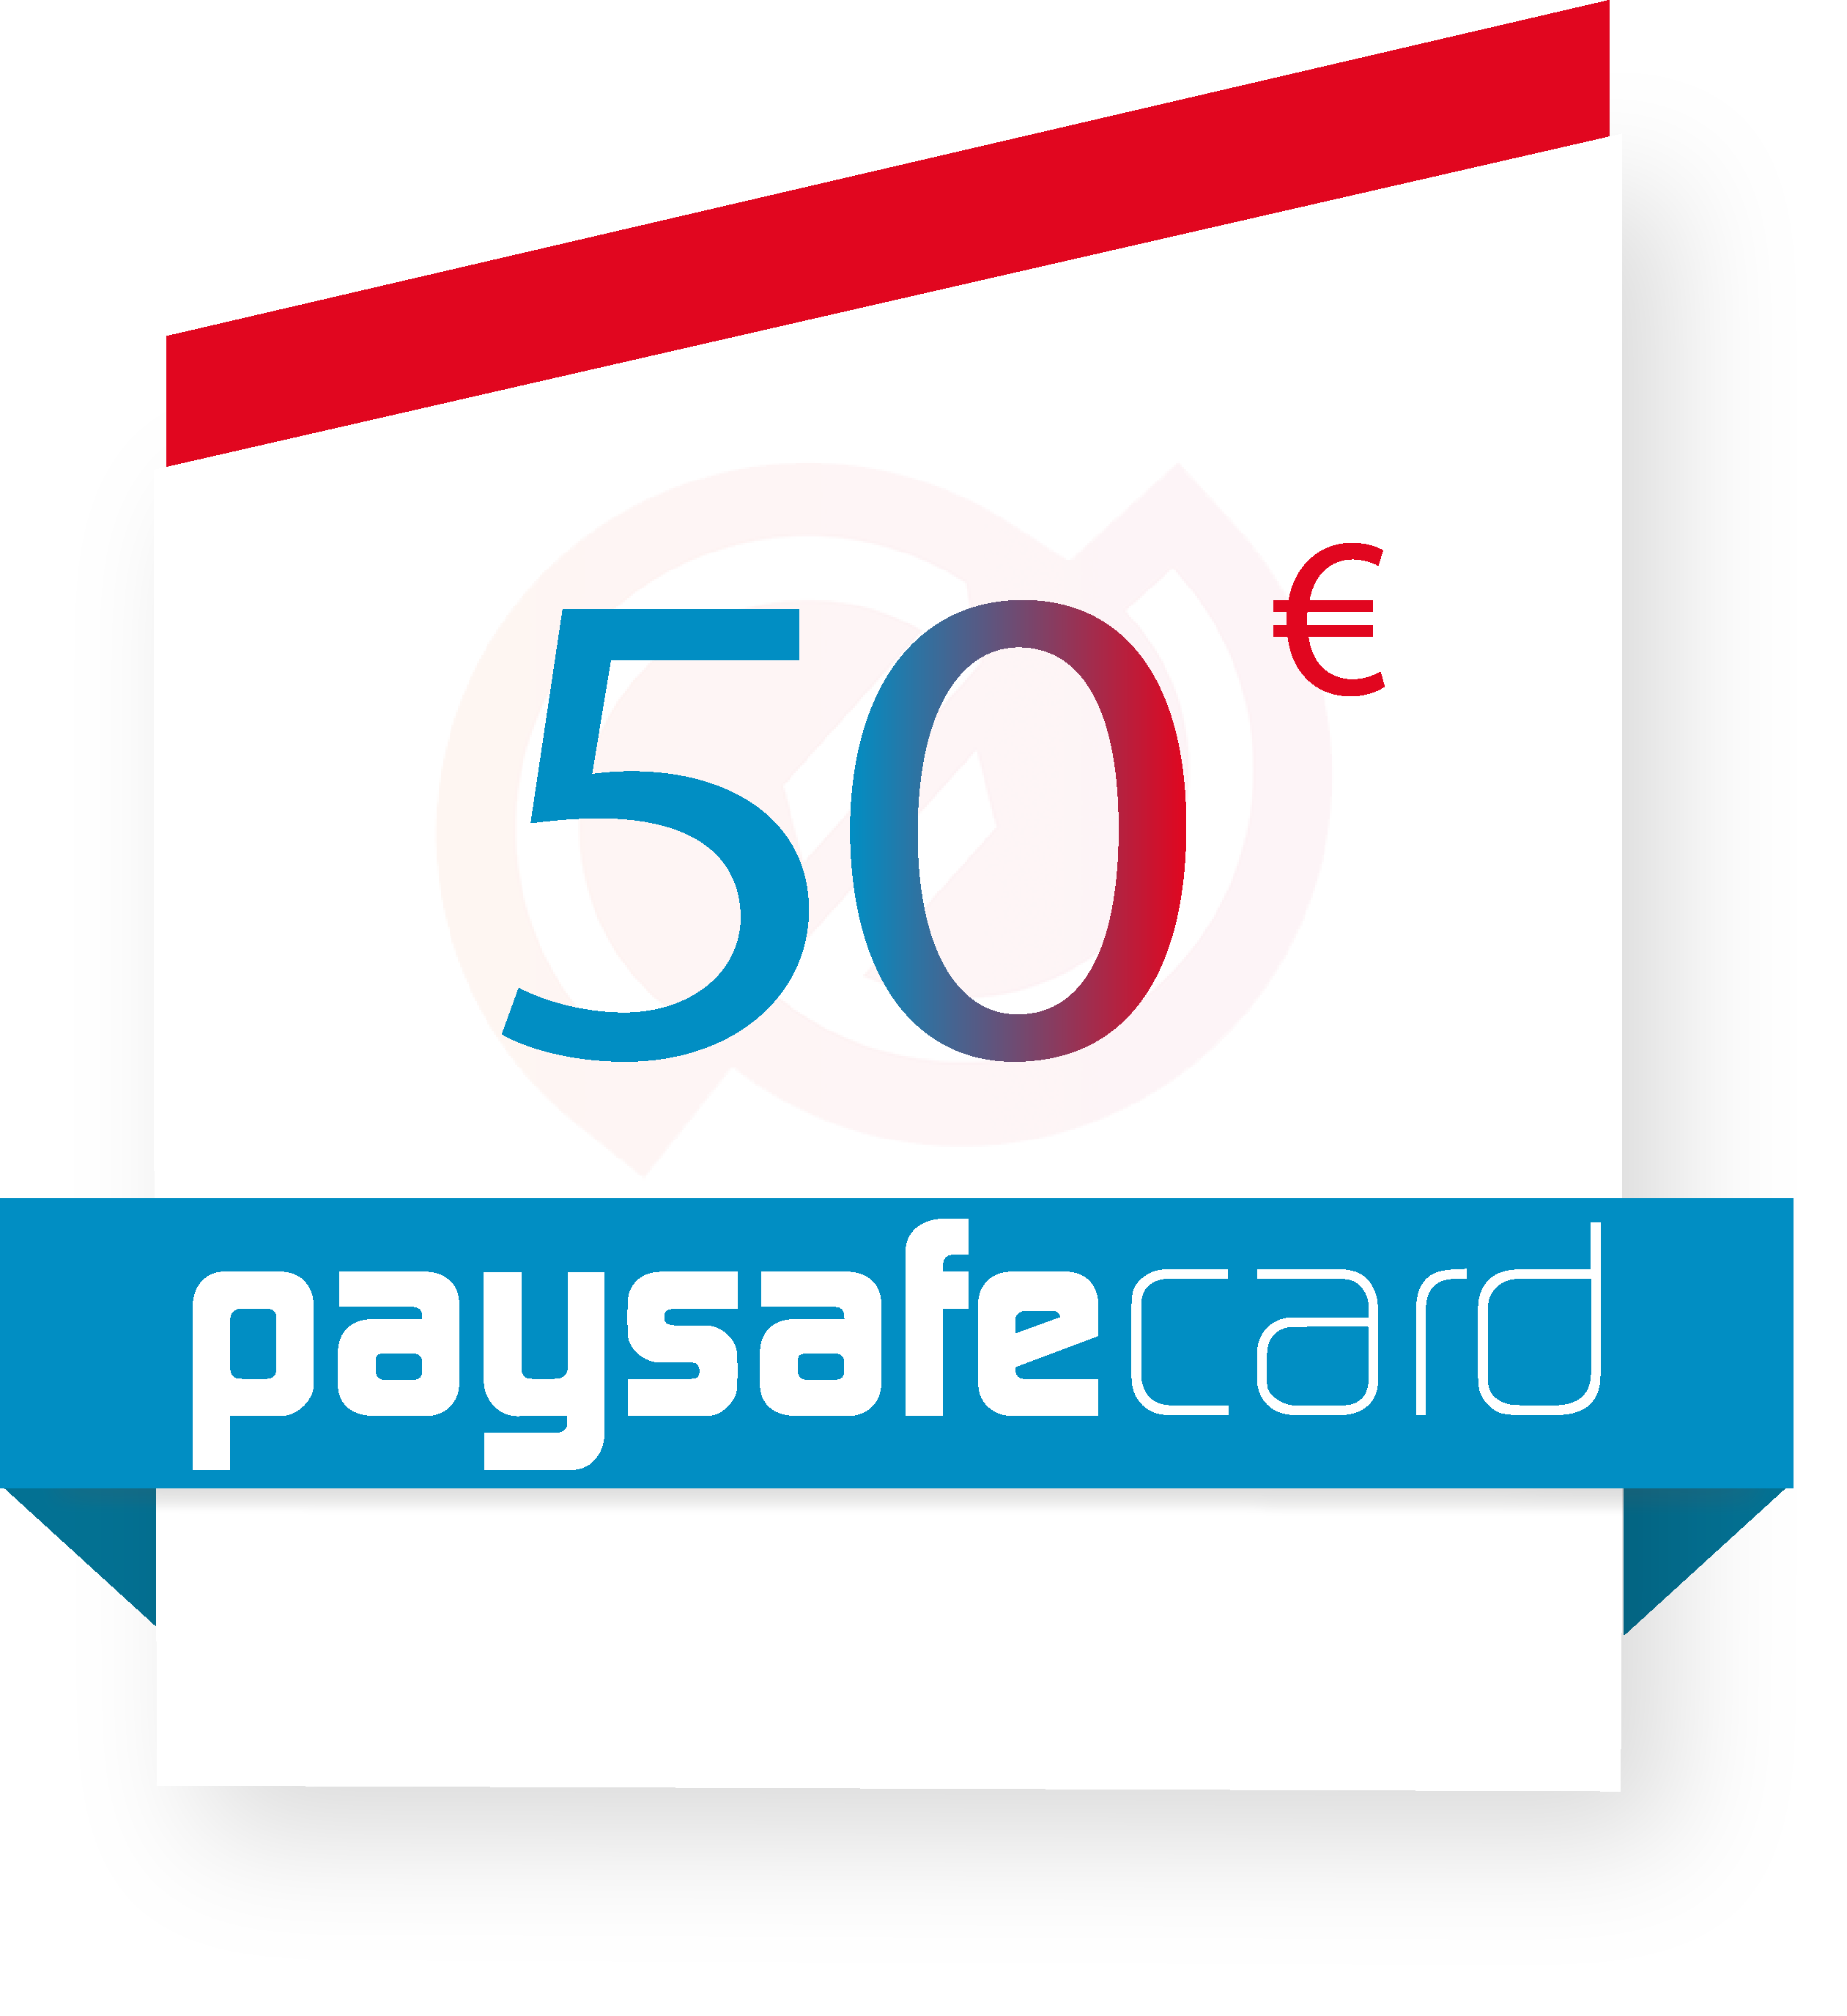 Paysafecard 30 Euro Limit